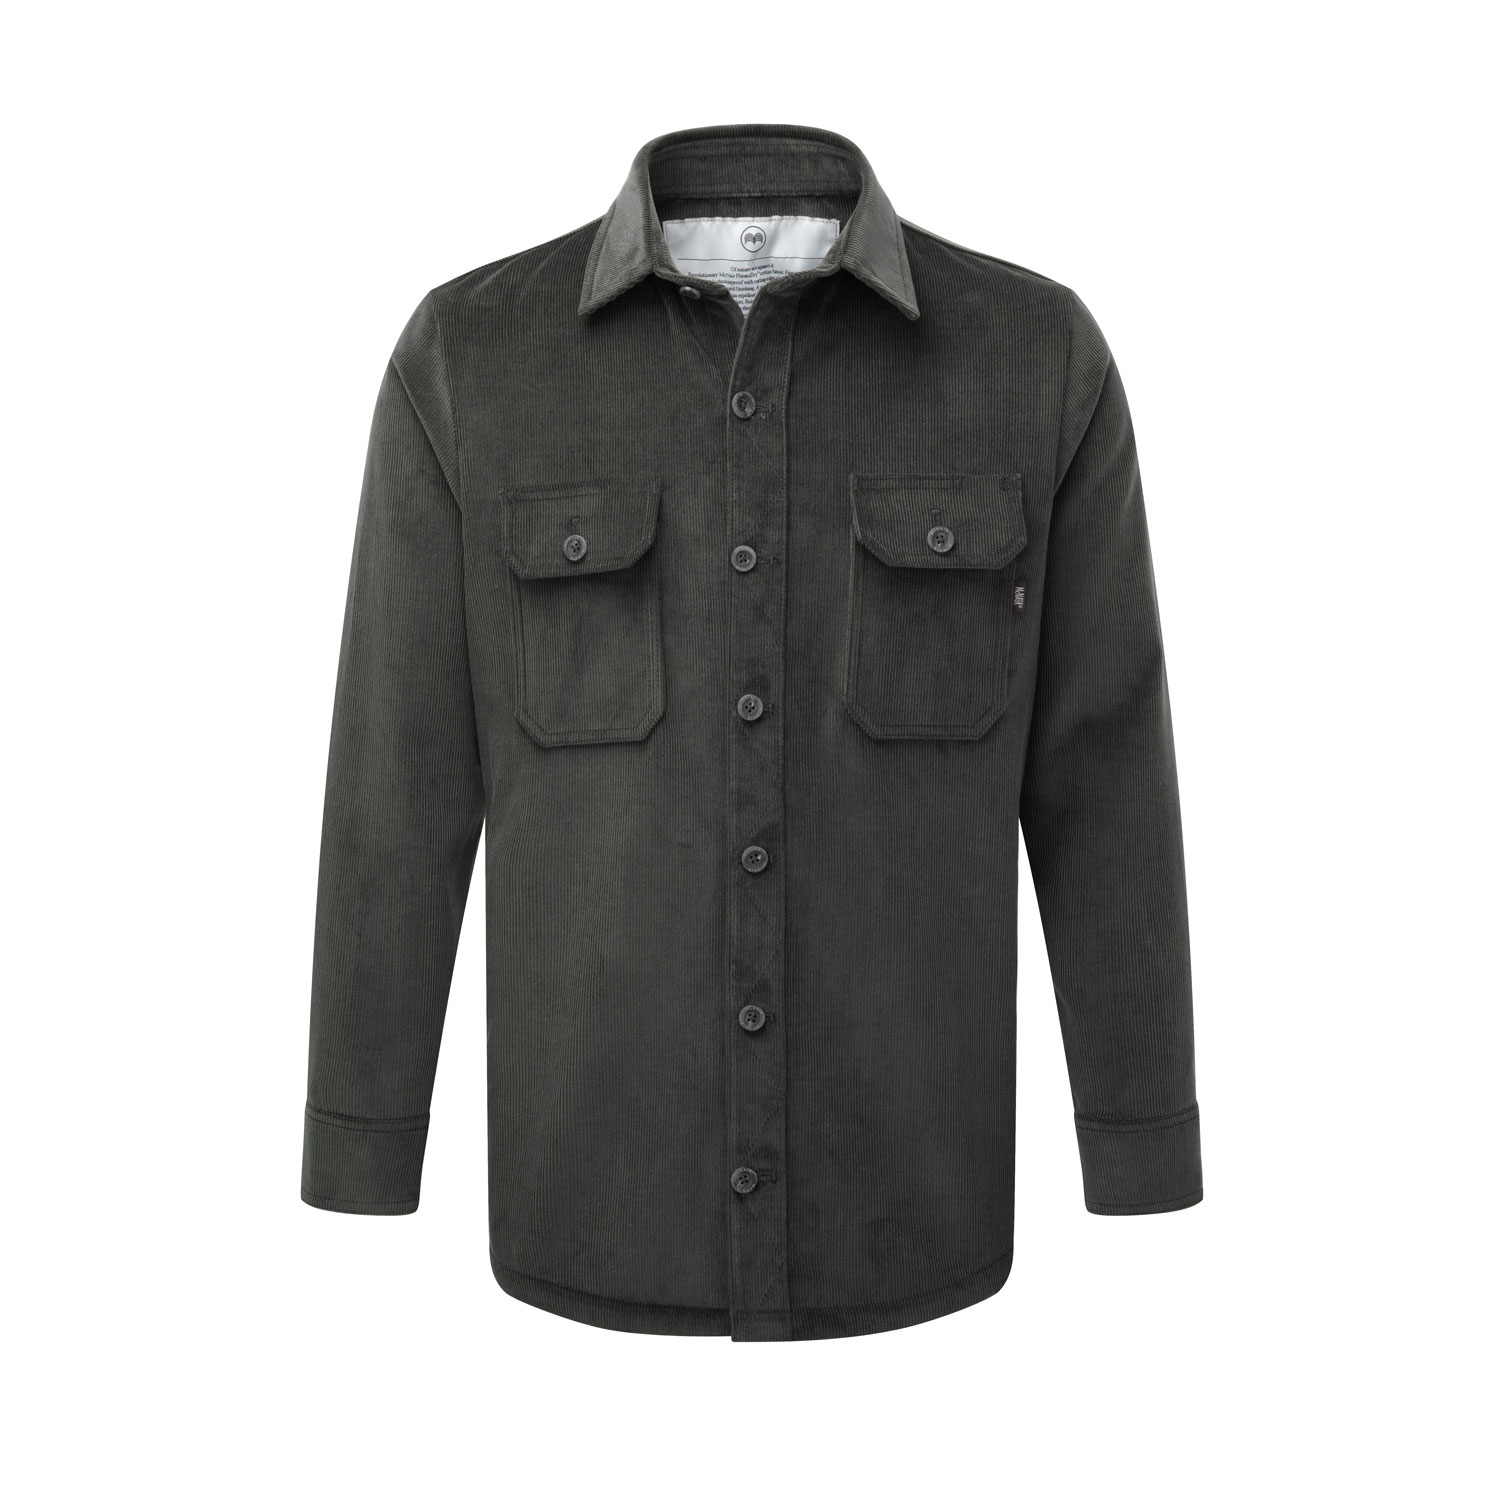 Men's corduroy work shirt in slate grey